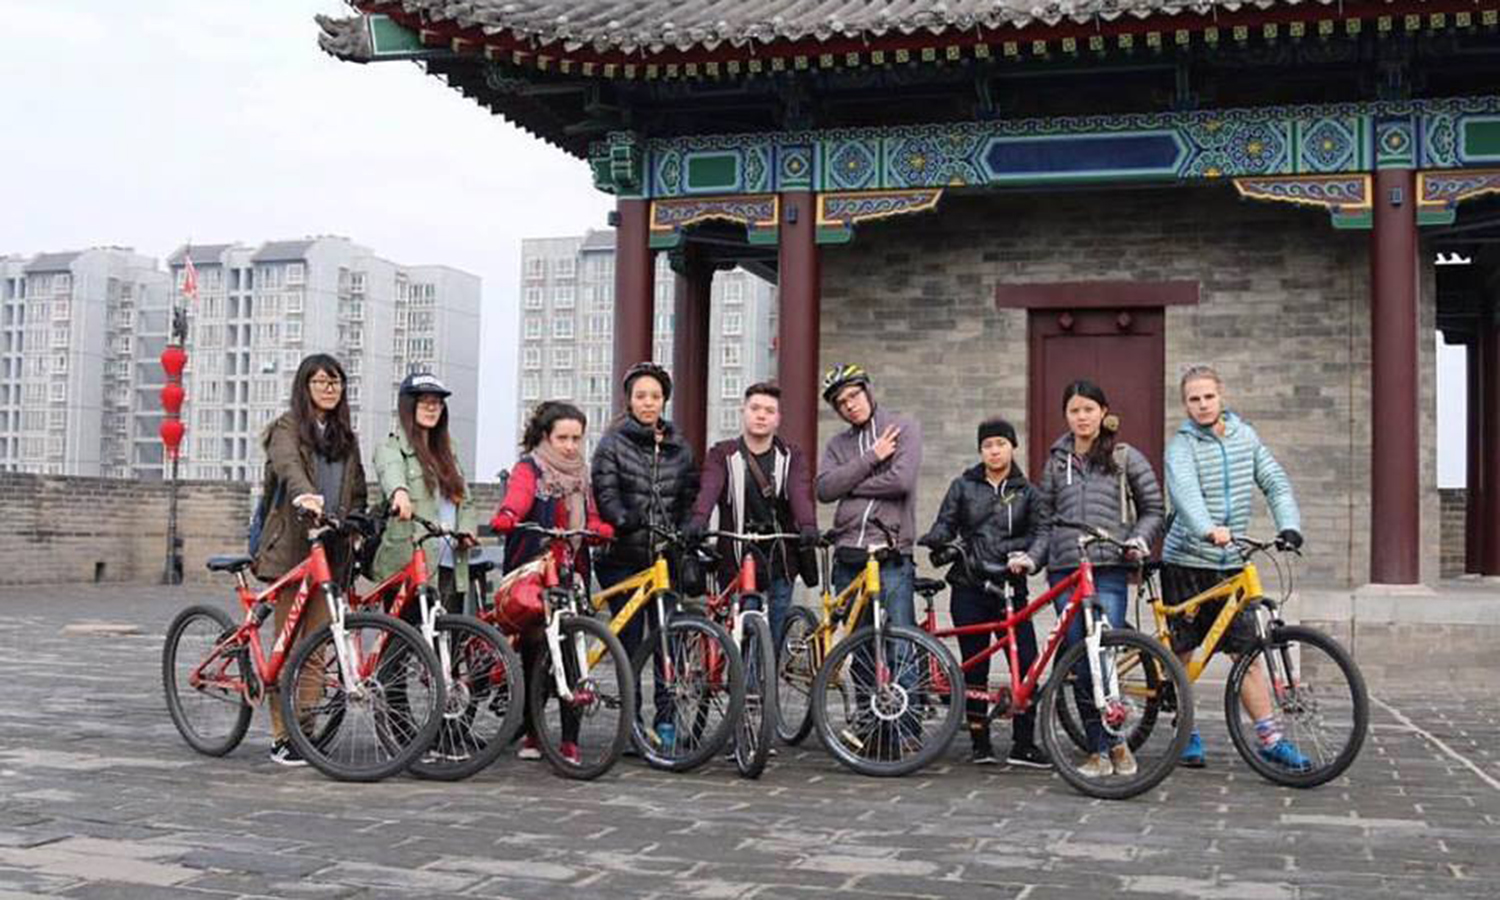 Check out this really tough looking group of bike riders! Gabbie Grimmett and her friends pose for a photo before going on a bike ride during her semester abroad in China!